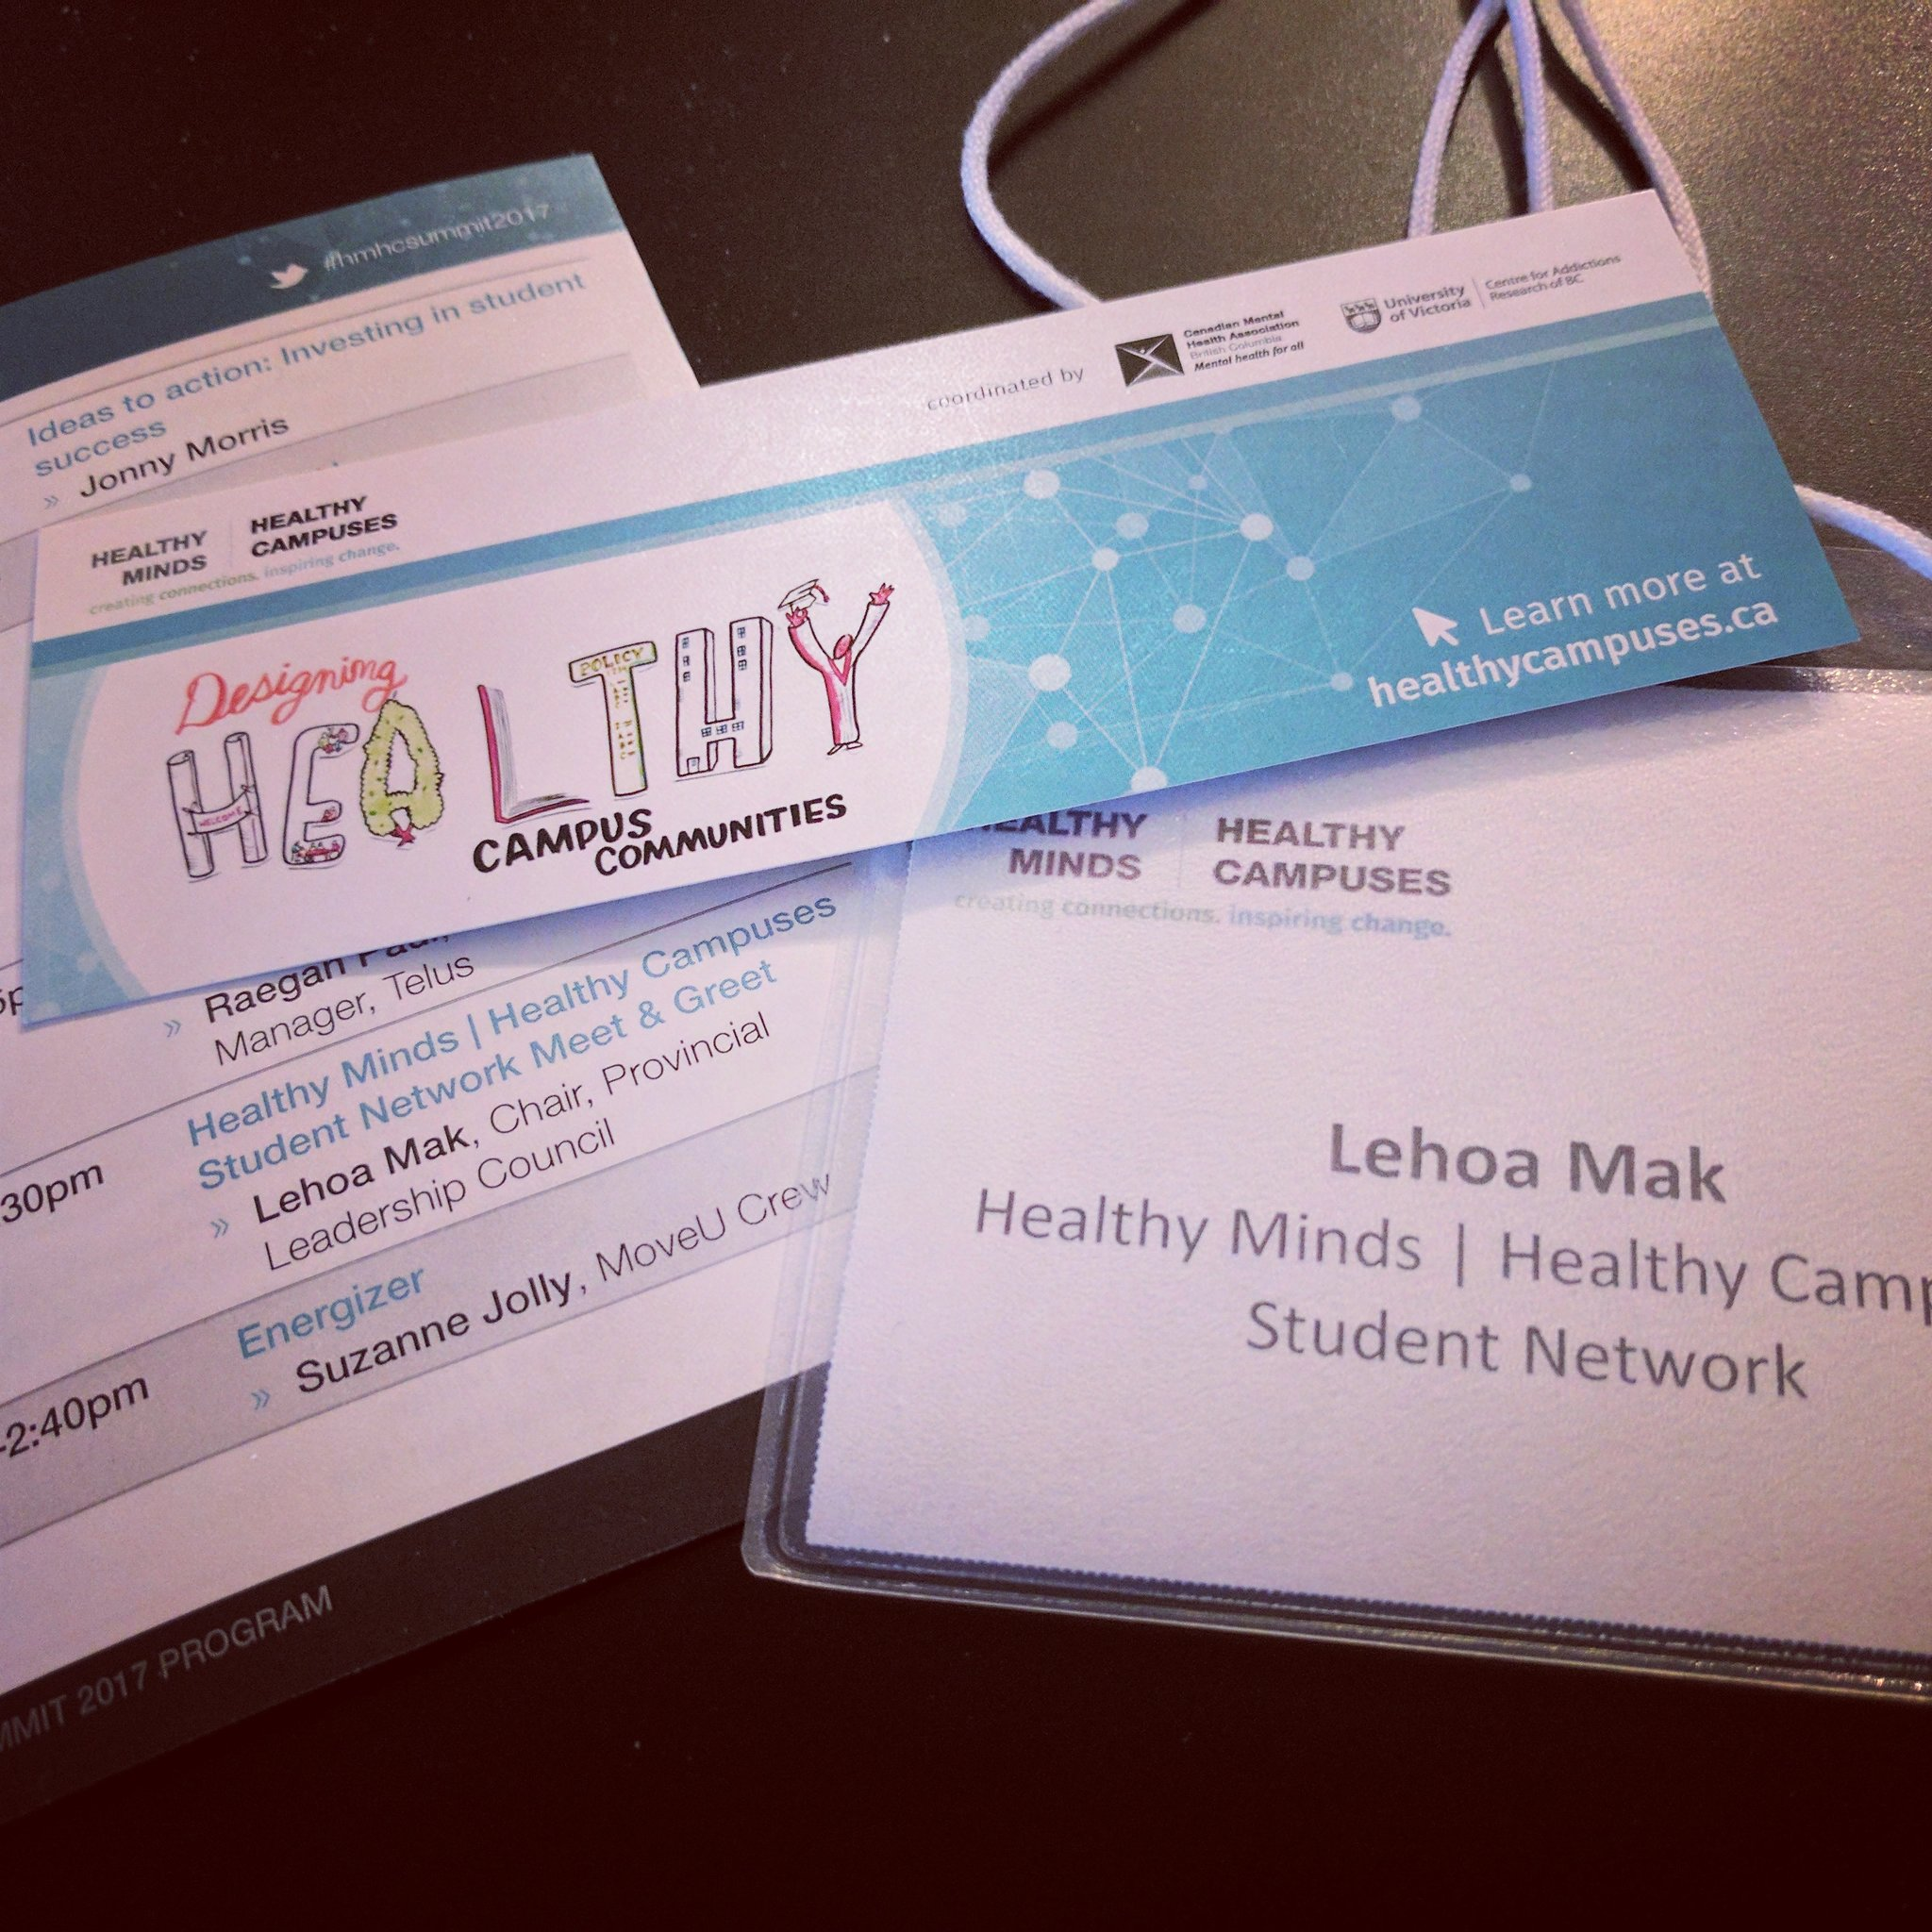 I appreciate the opportunity to share our volunteer work with an inspiring audience of mental health advocates today!! #hmhcsummit2017 https://t.co/CZcEHVQqZv